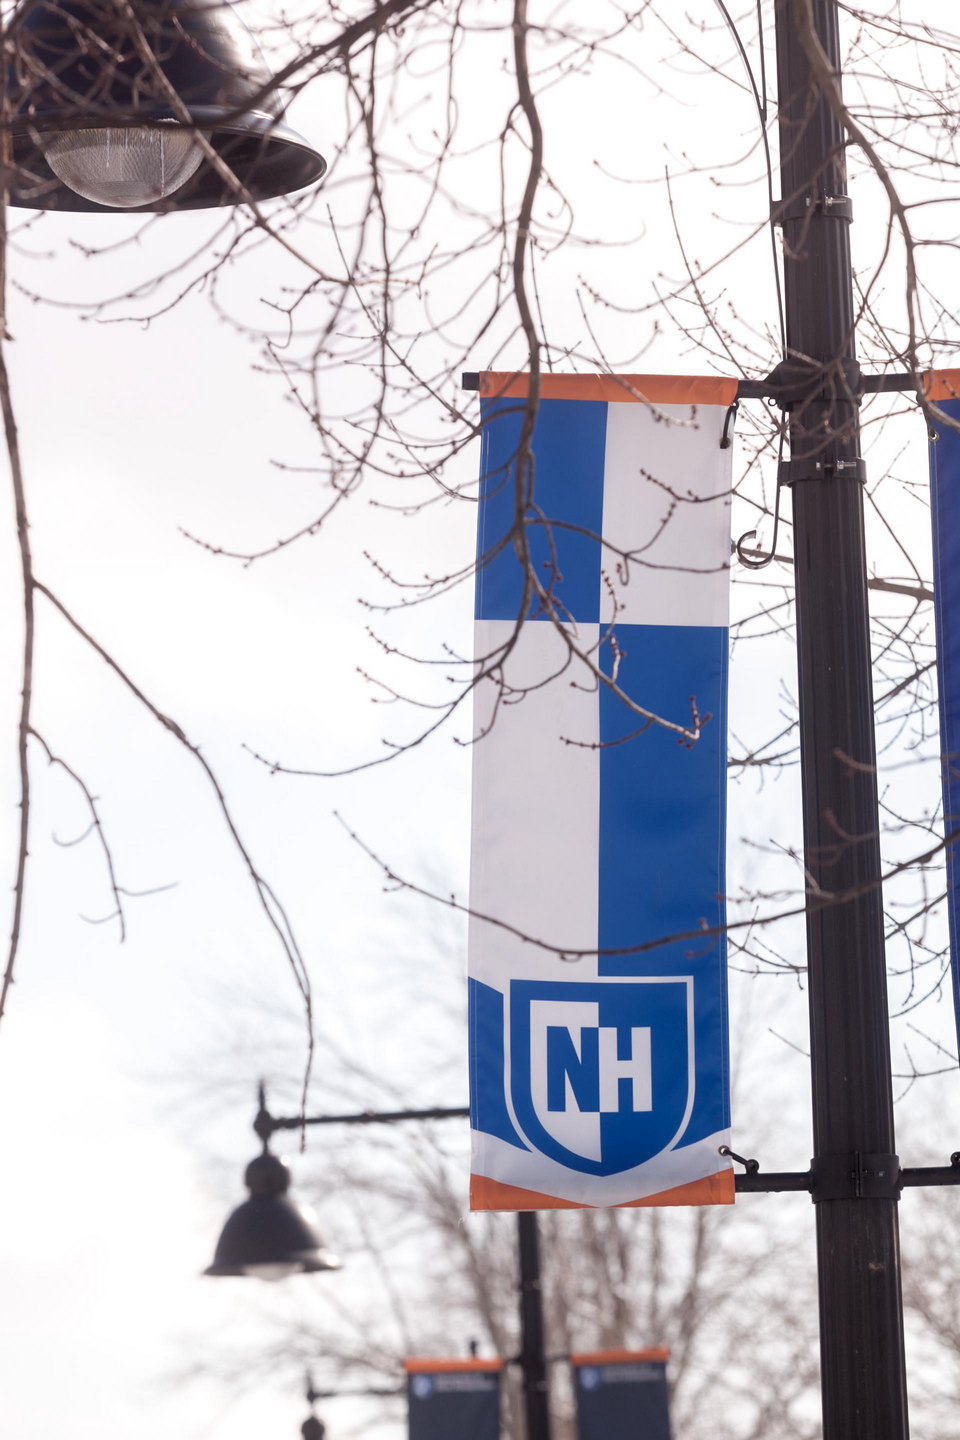 Image of UNH banner